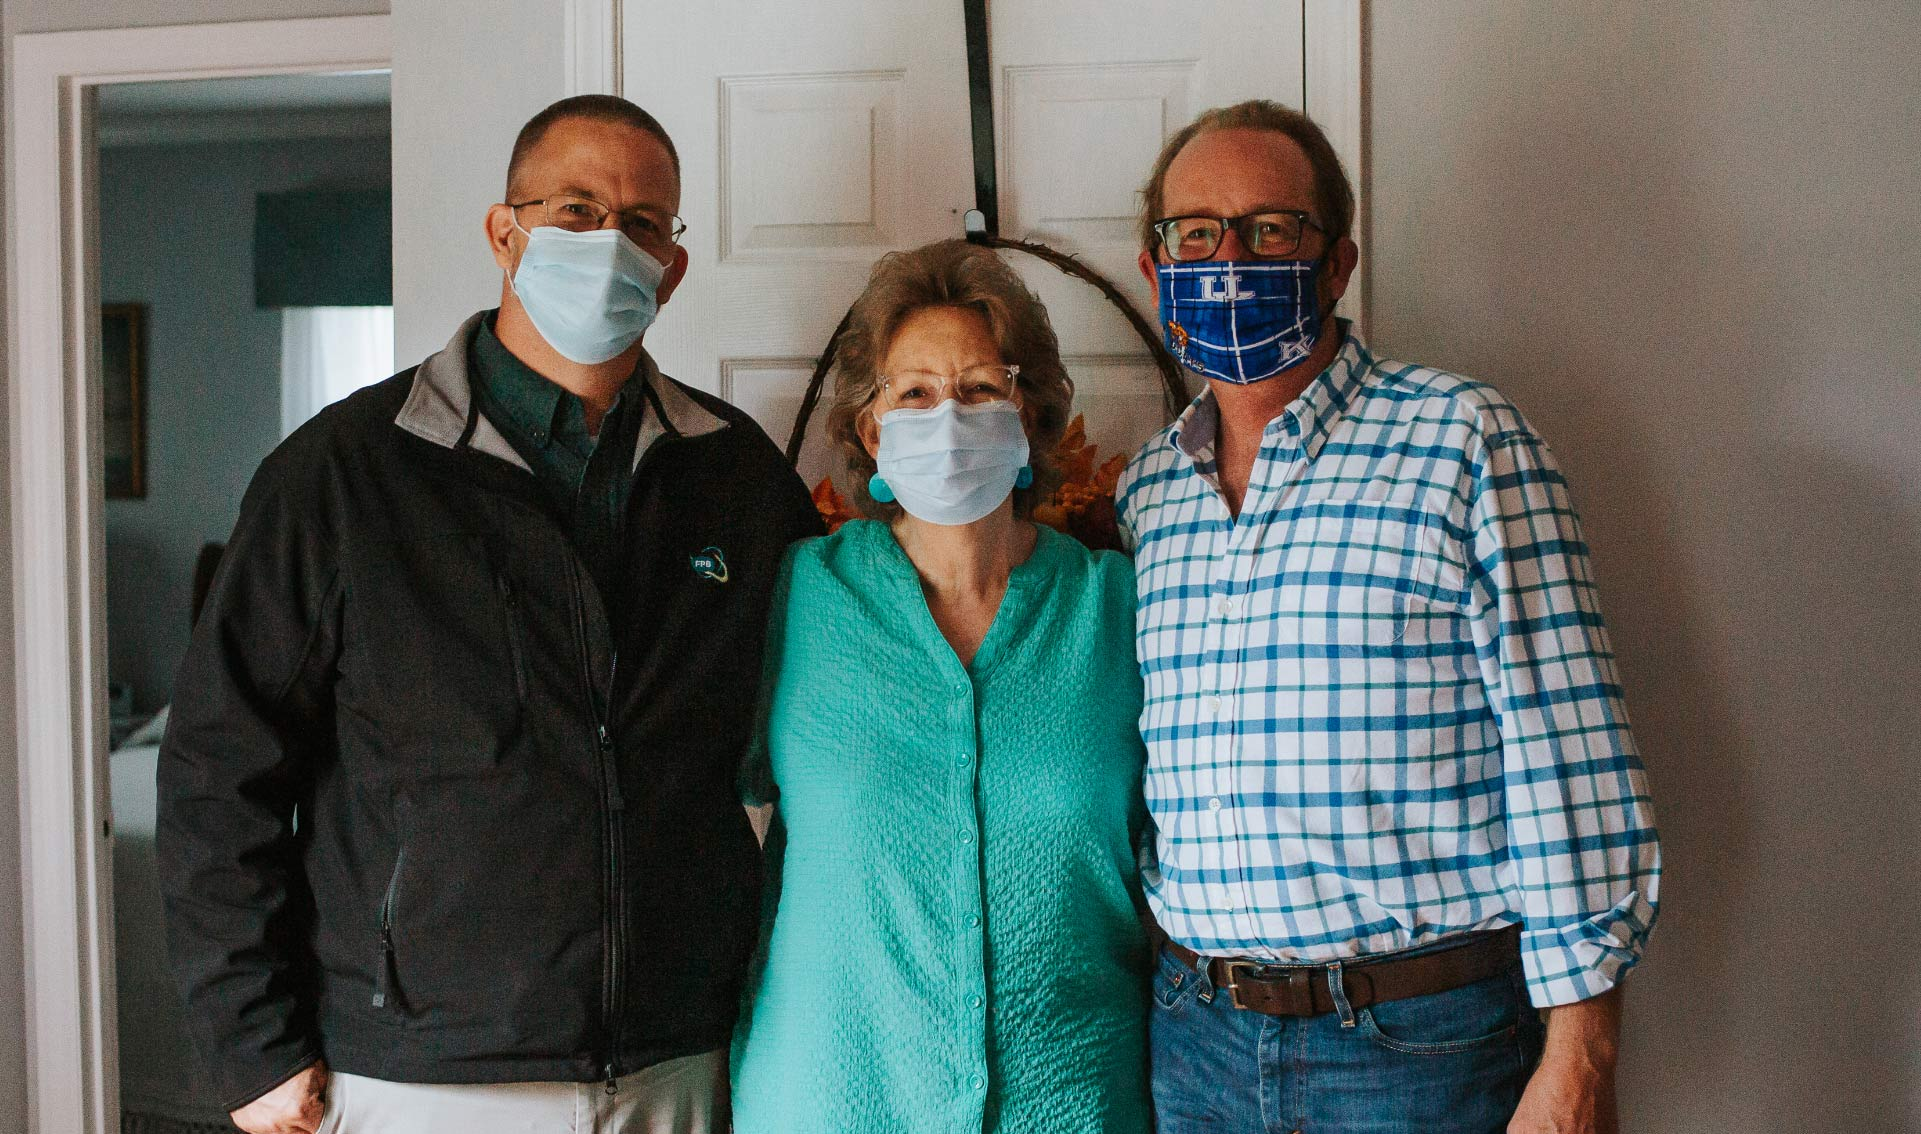 Mae standing closely between her sons. On her left is Kenneth, a middle-aged white man wearing a black jacket, glasses and a facemask. On her right is Scotty, in a white and blue checkered shirt, black framed glasses and a facemask.